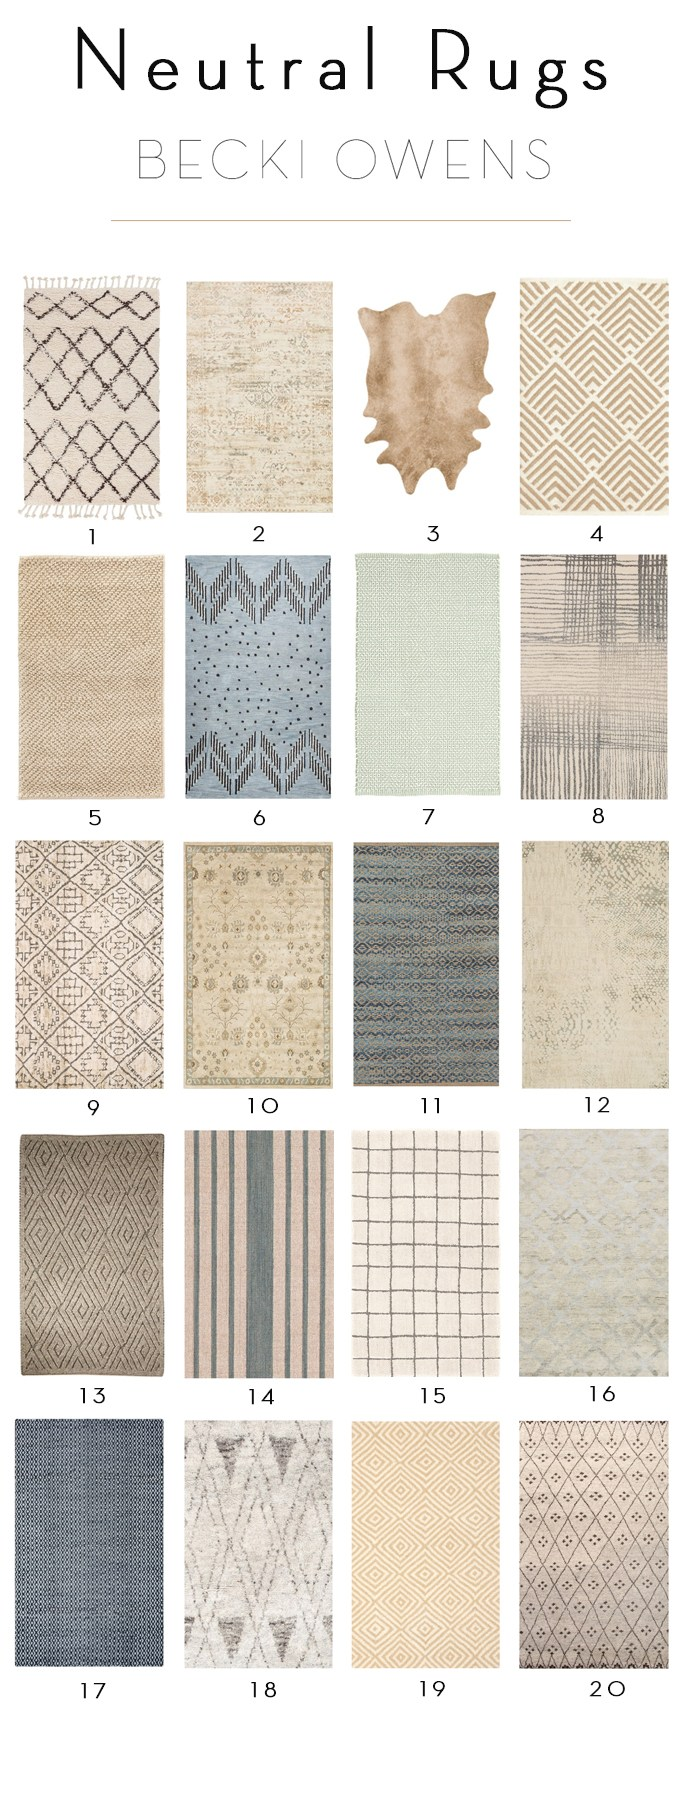 20 neutral rugs 25% off JQGCRGL